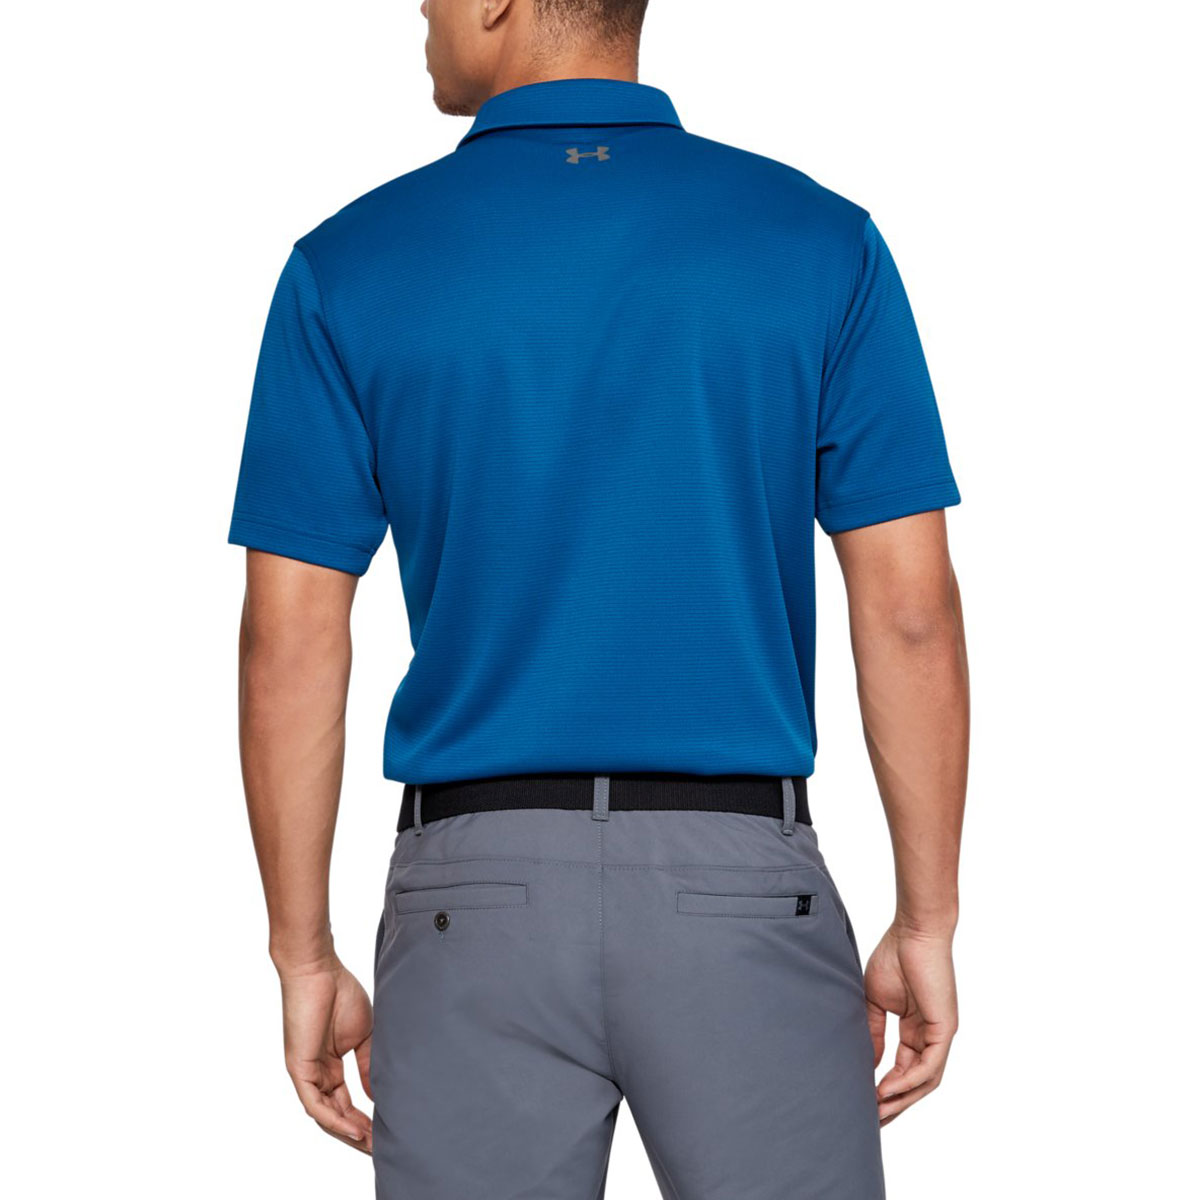 Under-Armour-Mens-Golf-Tech-Wicking-Textured-Soft-Light-Polo-Shirt thumbnail 75